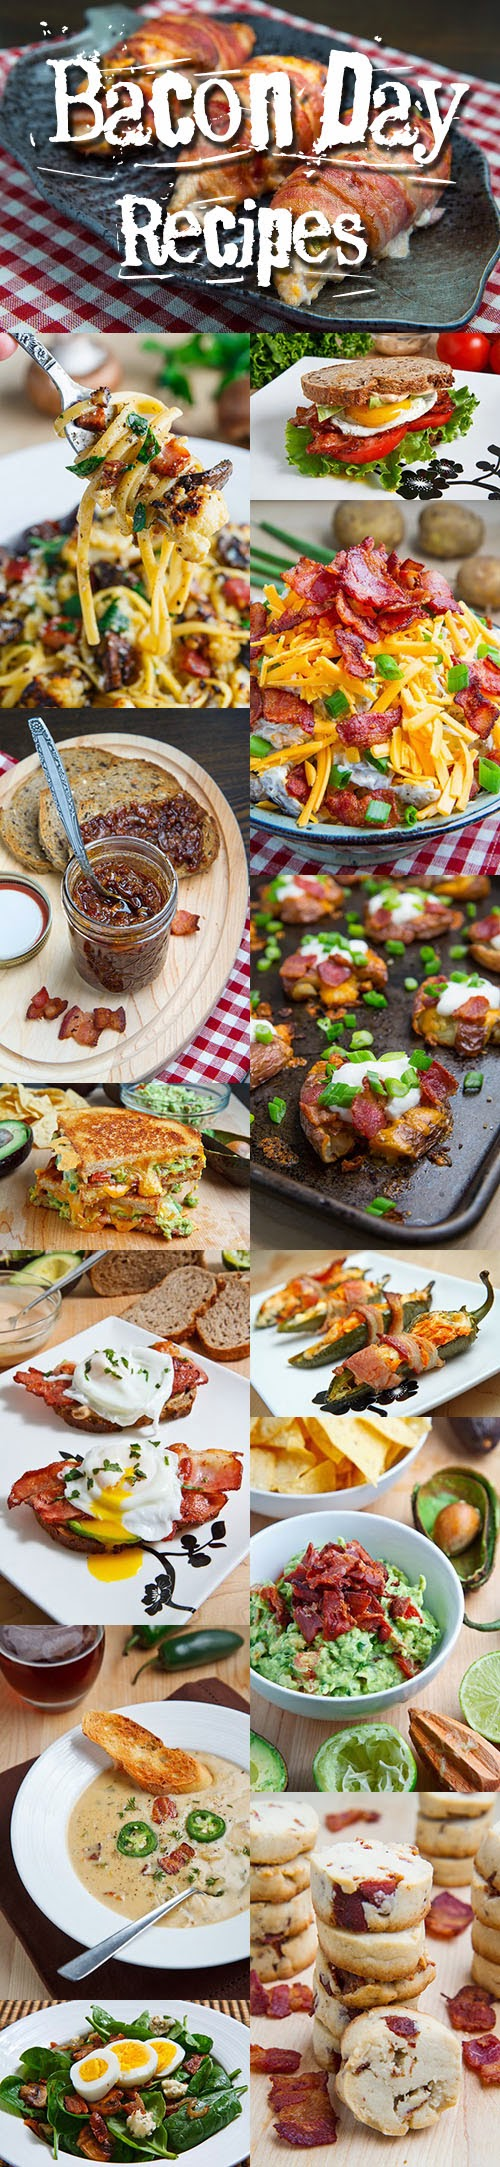 Bacon Day Recipes